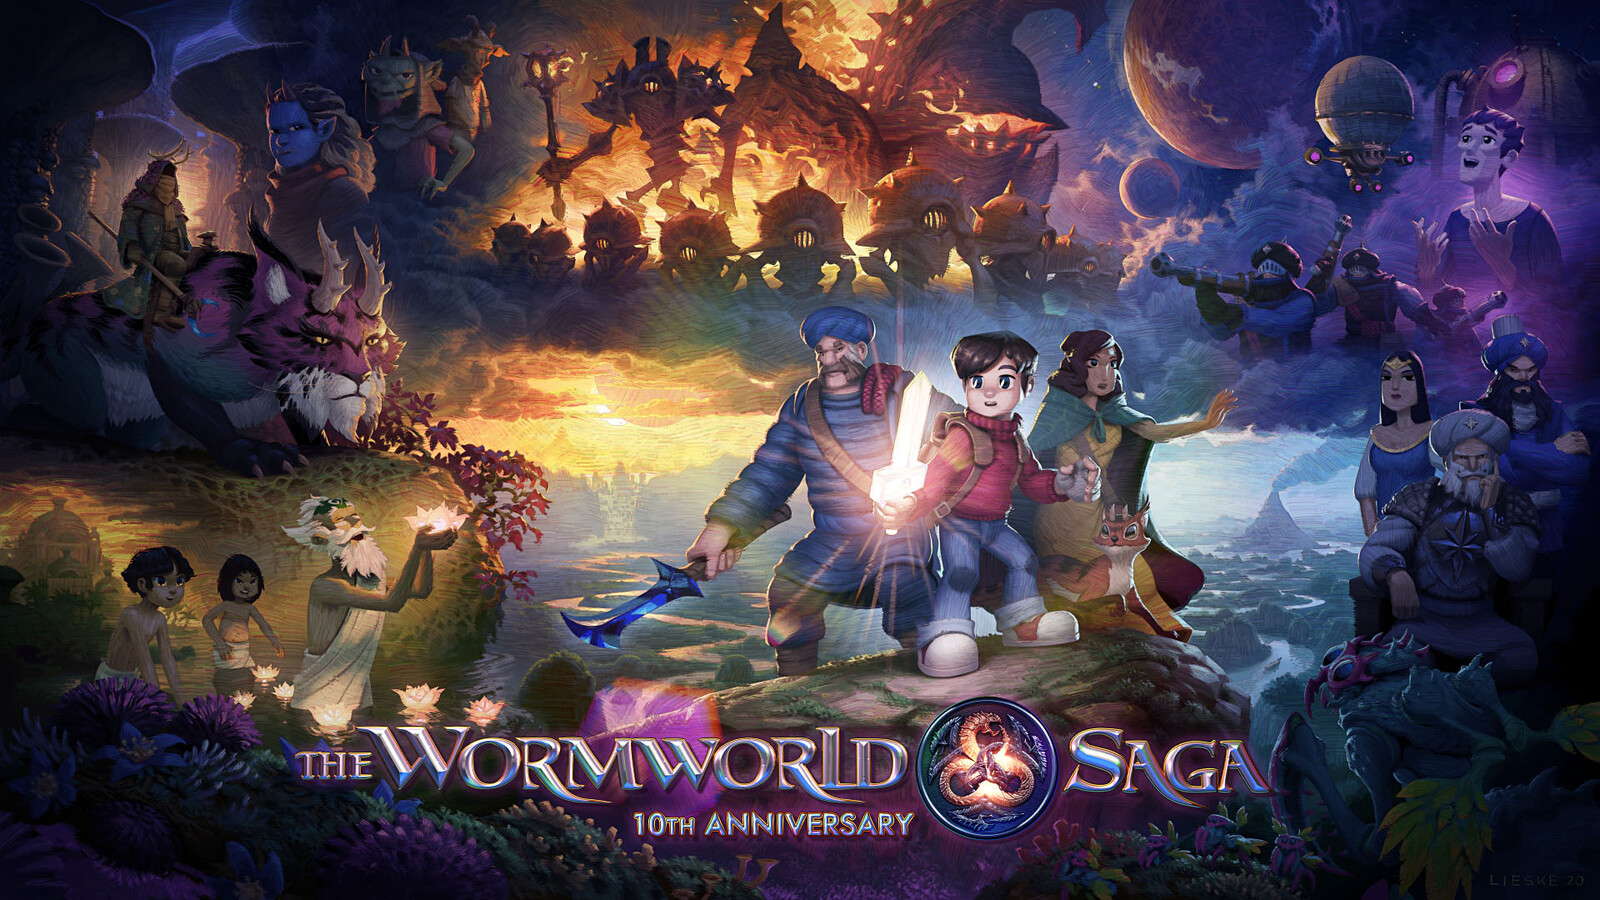 The Wormworld Saga 10th Anniversary Artwork